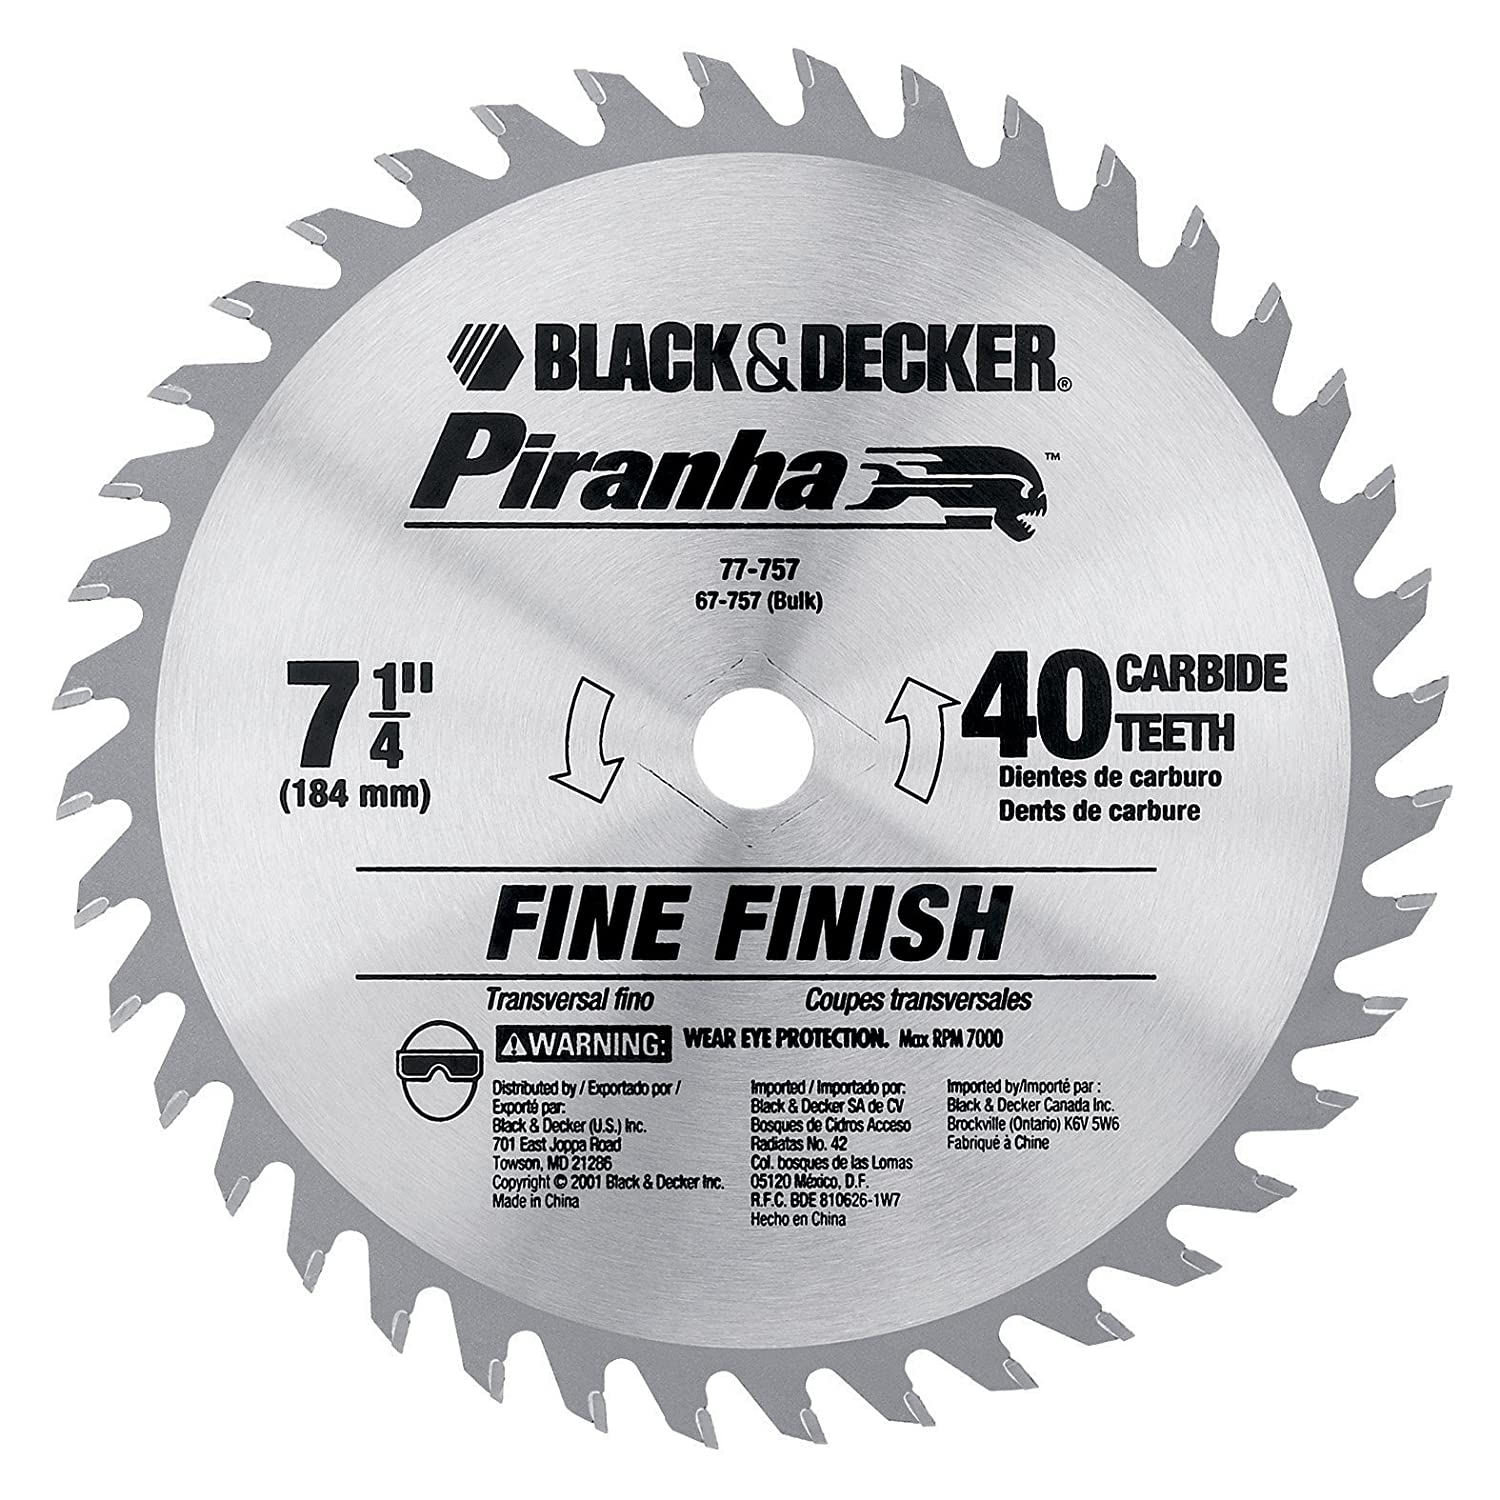 Black decker 67 757 7 14 inch 40 tooth bulk piranha saw blade black decker 67 757 7 14 inch 40 tooth bulk piranha saw blade circular saw blades amazon greentooth Choice Image